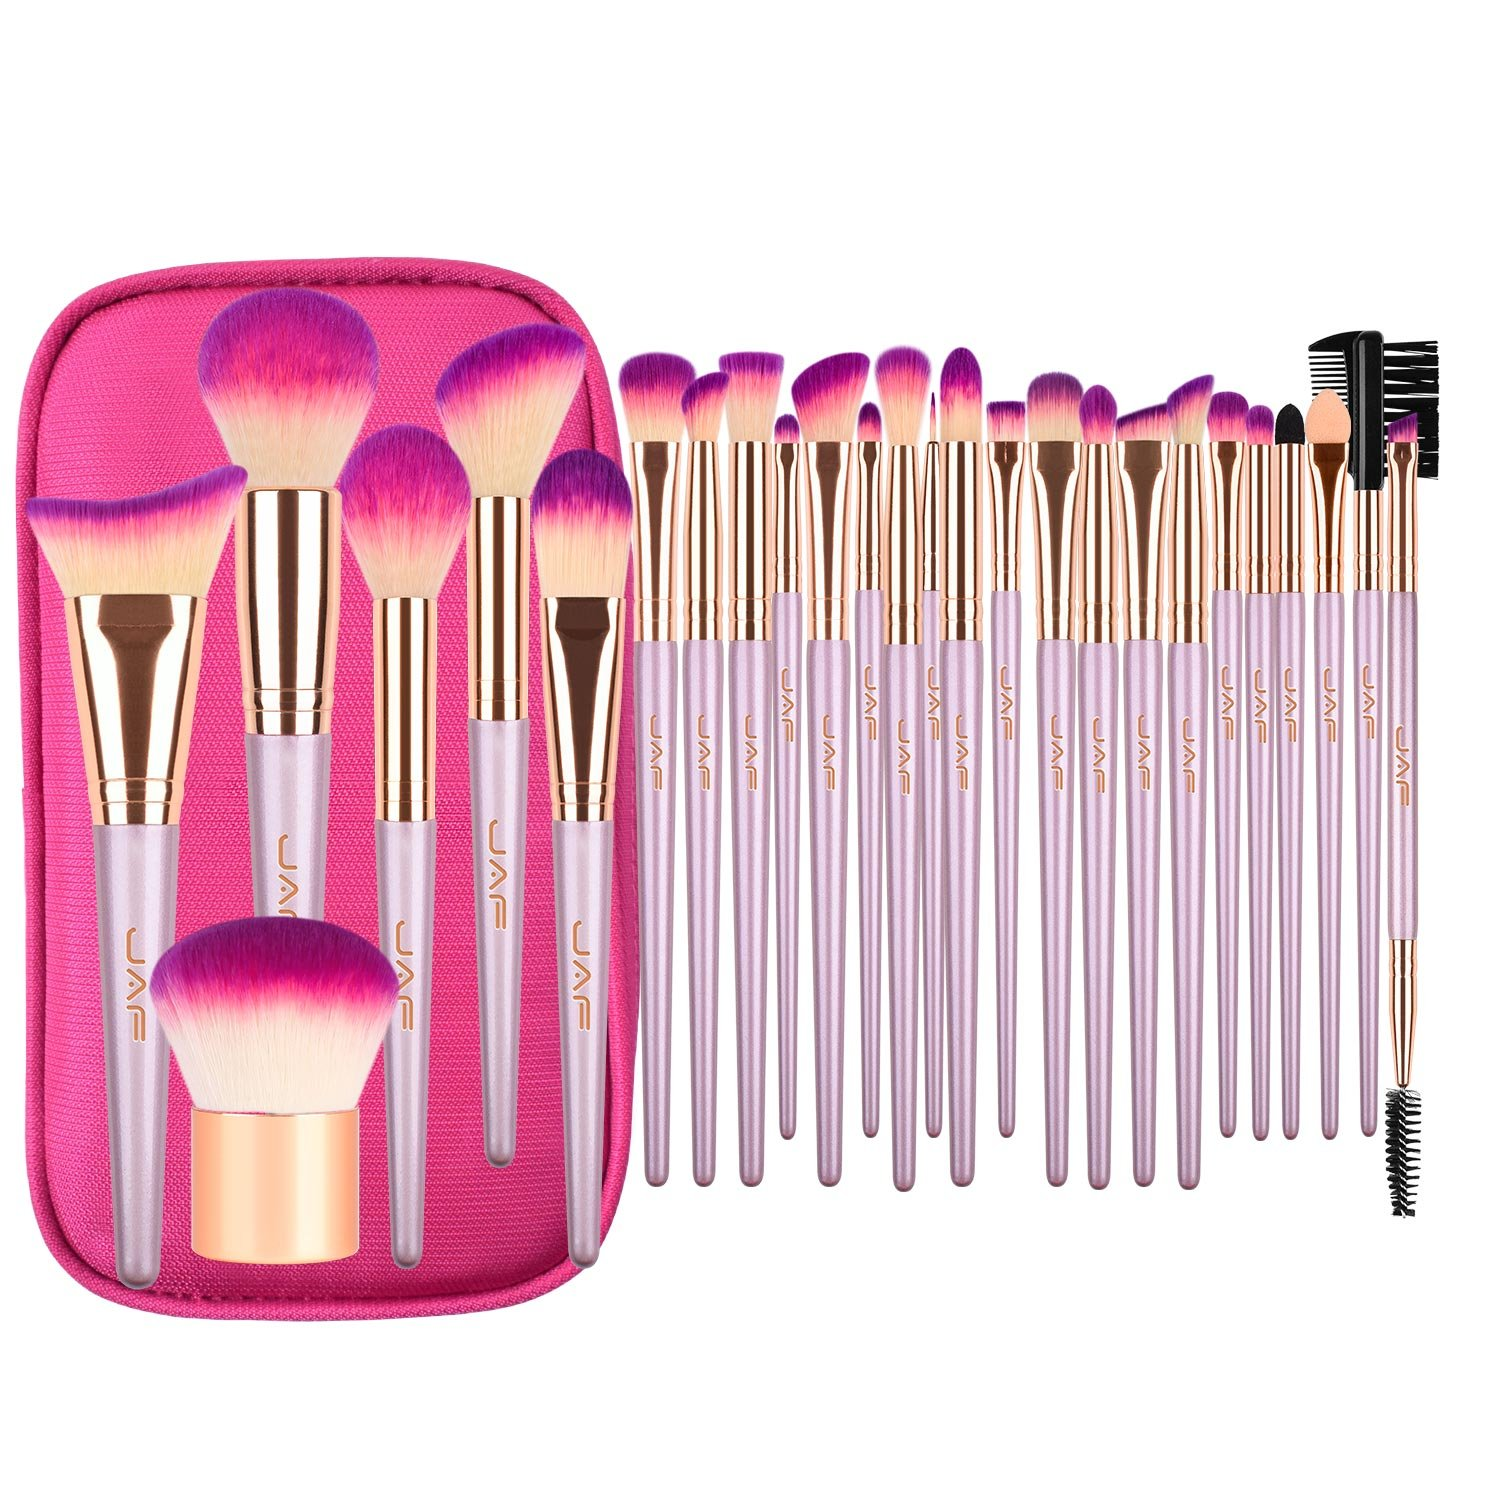 Makeup Brush Set, JAF 26pcs Vegan Cruelty Free Cute Rose Gold Professional Makeup Brushes Set Essential Cosmetic Makeup Brushes for Powder Foundation Blush Contour Concealer